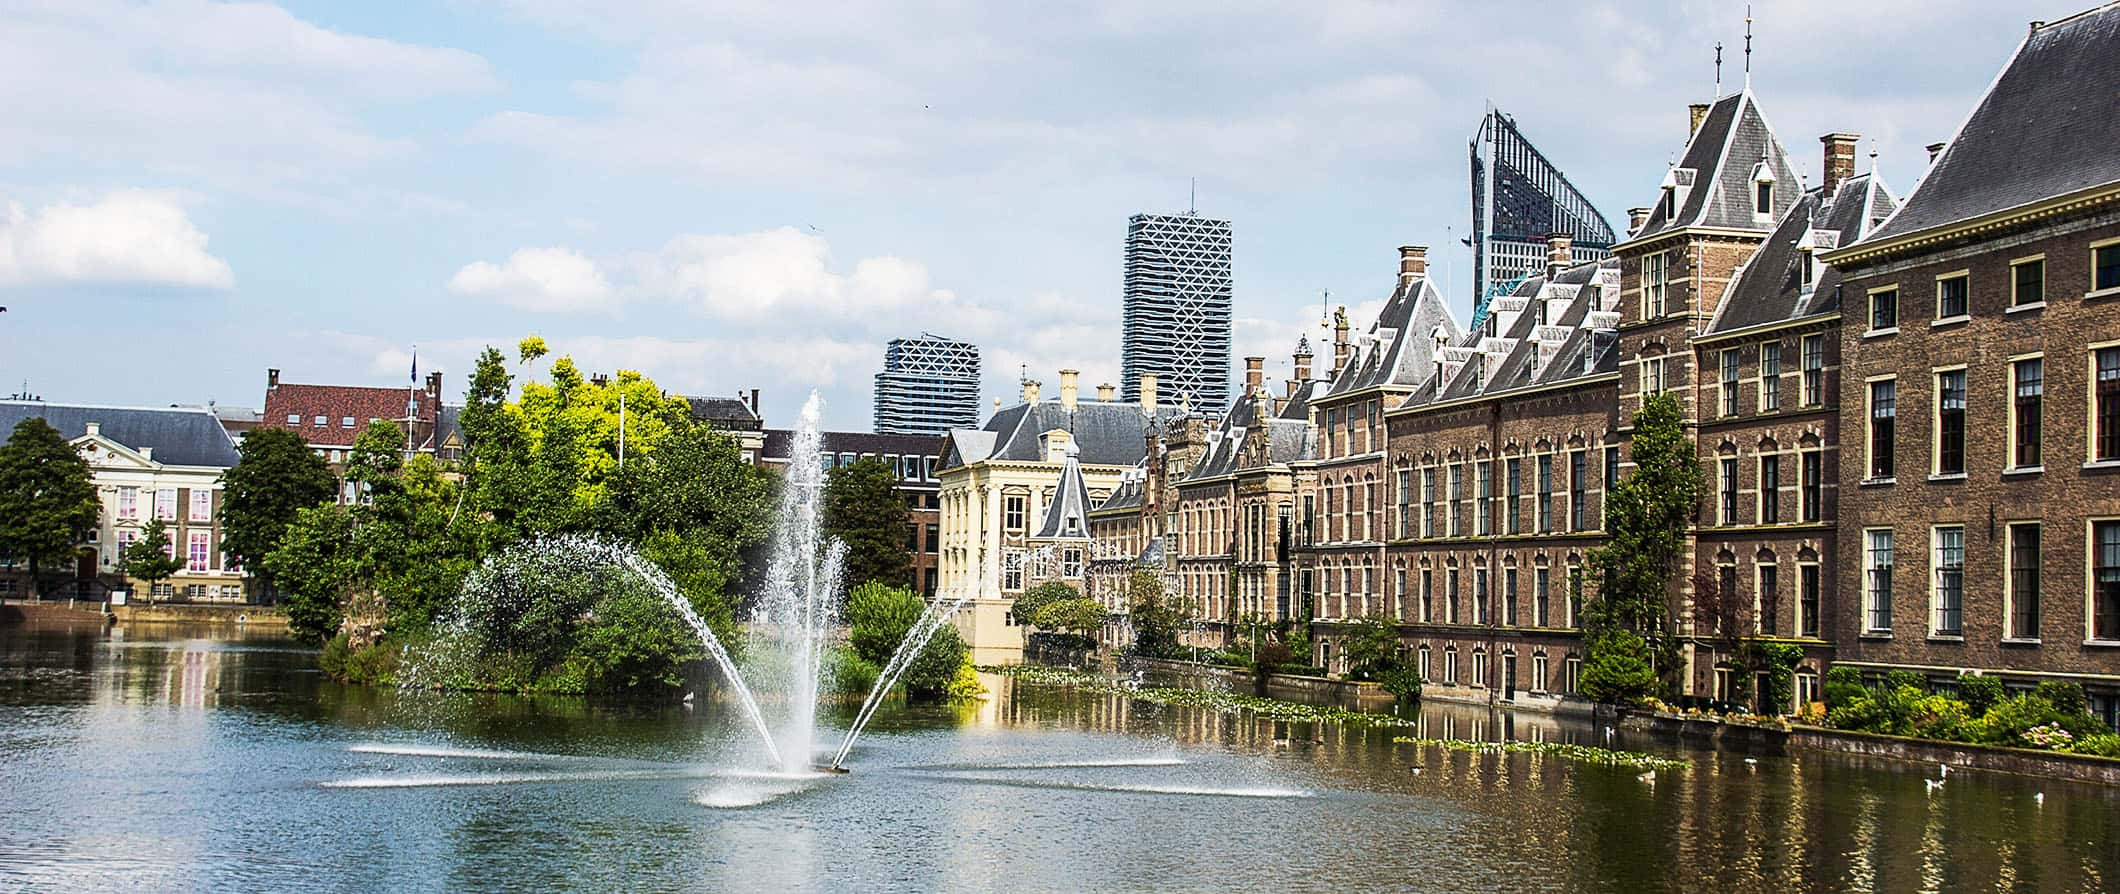 Cheap Insurance Companies >> The Hague Travel Guide: What to See, Do, Costs, & Ways to Save